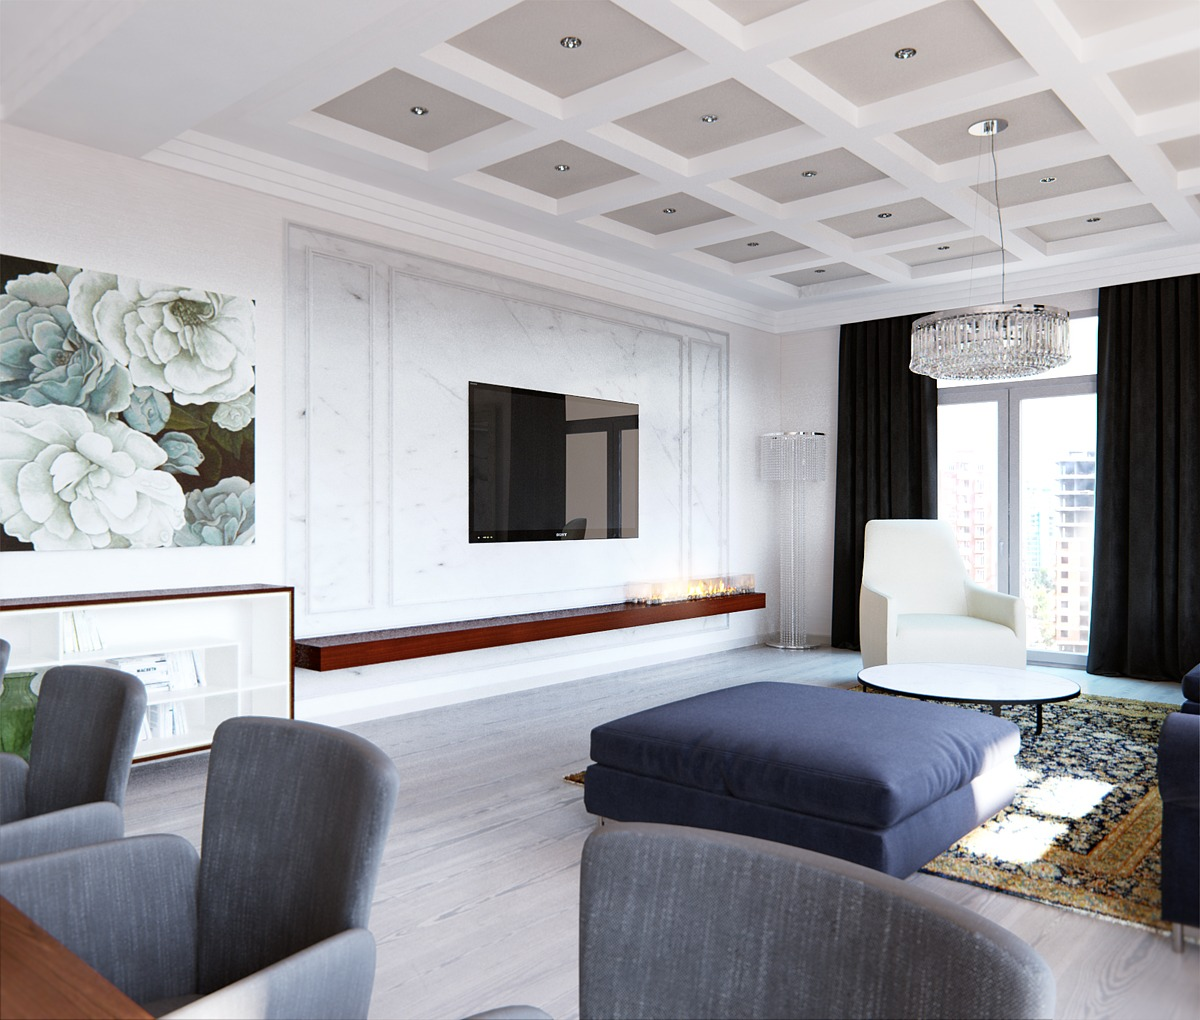 Apartment Blue Book: A Stylish Apartment With Classic Design Features